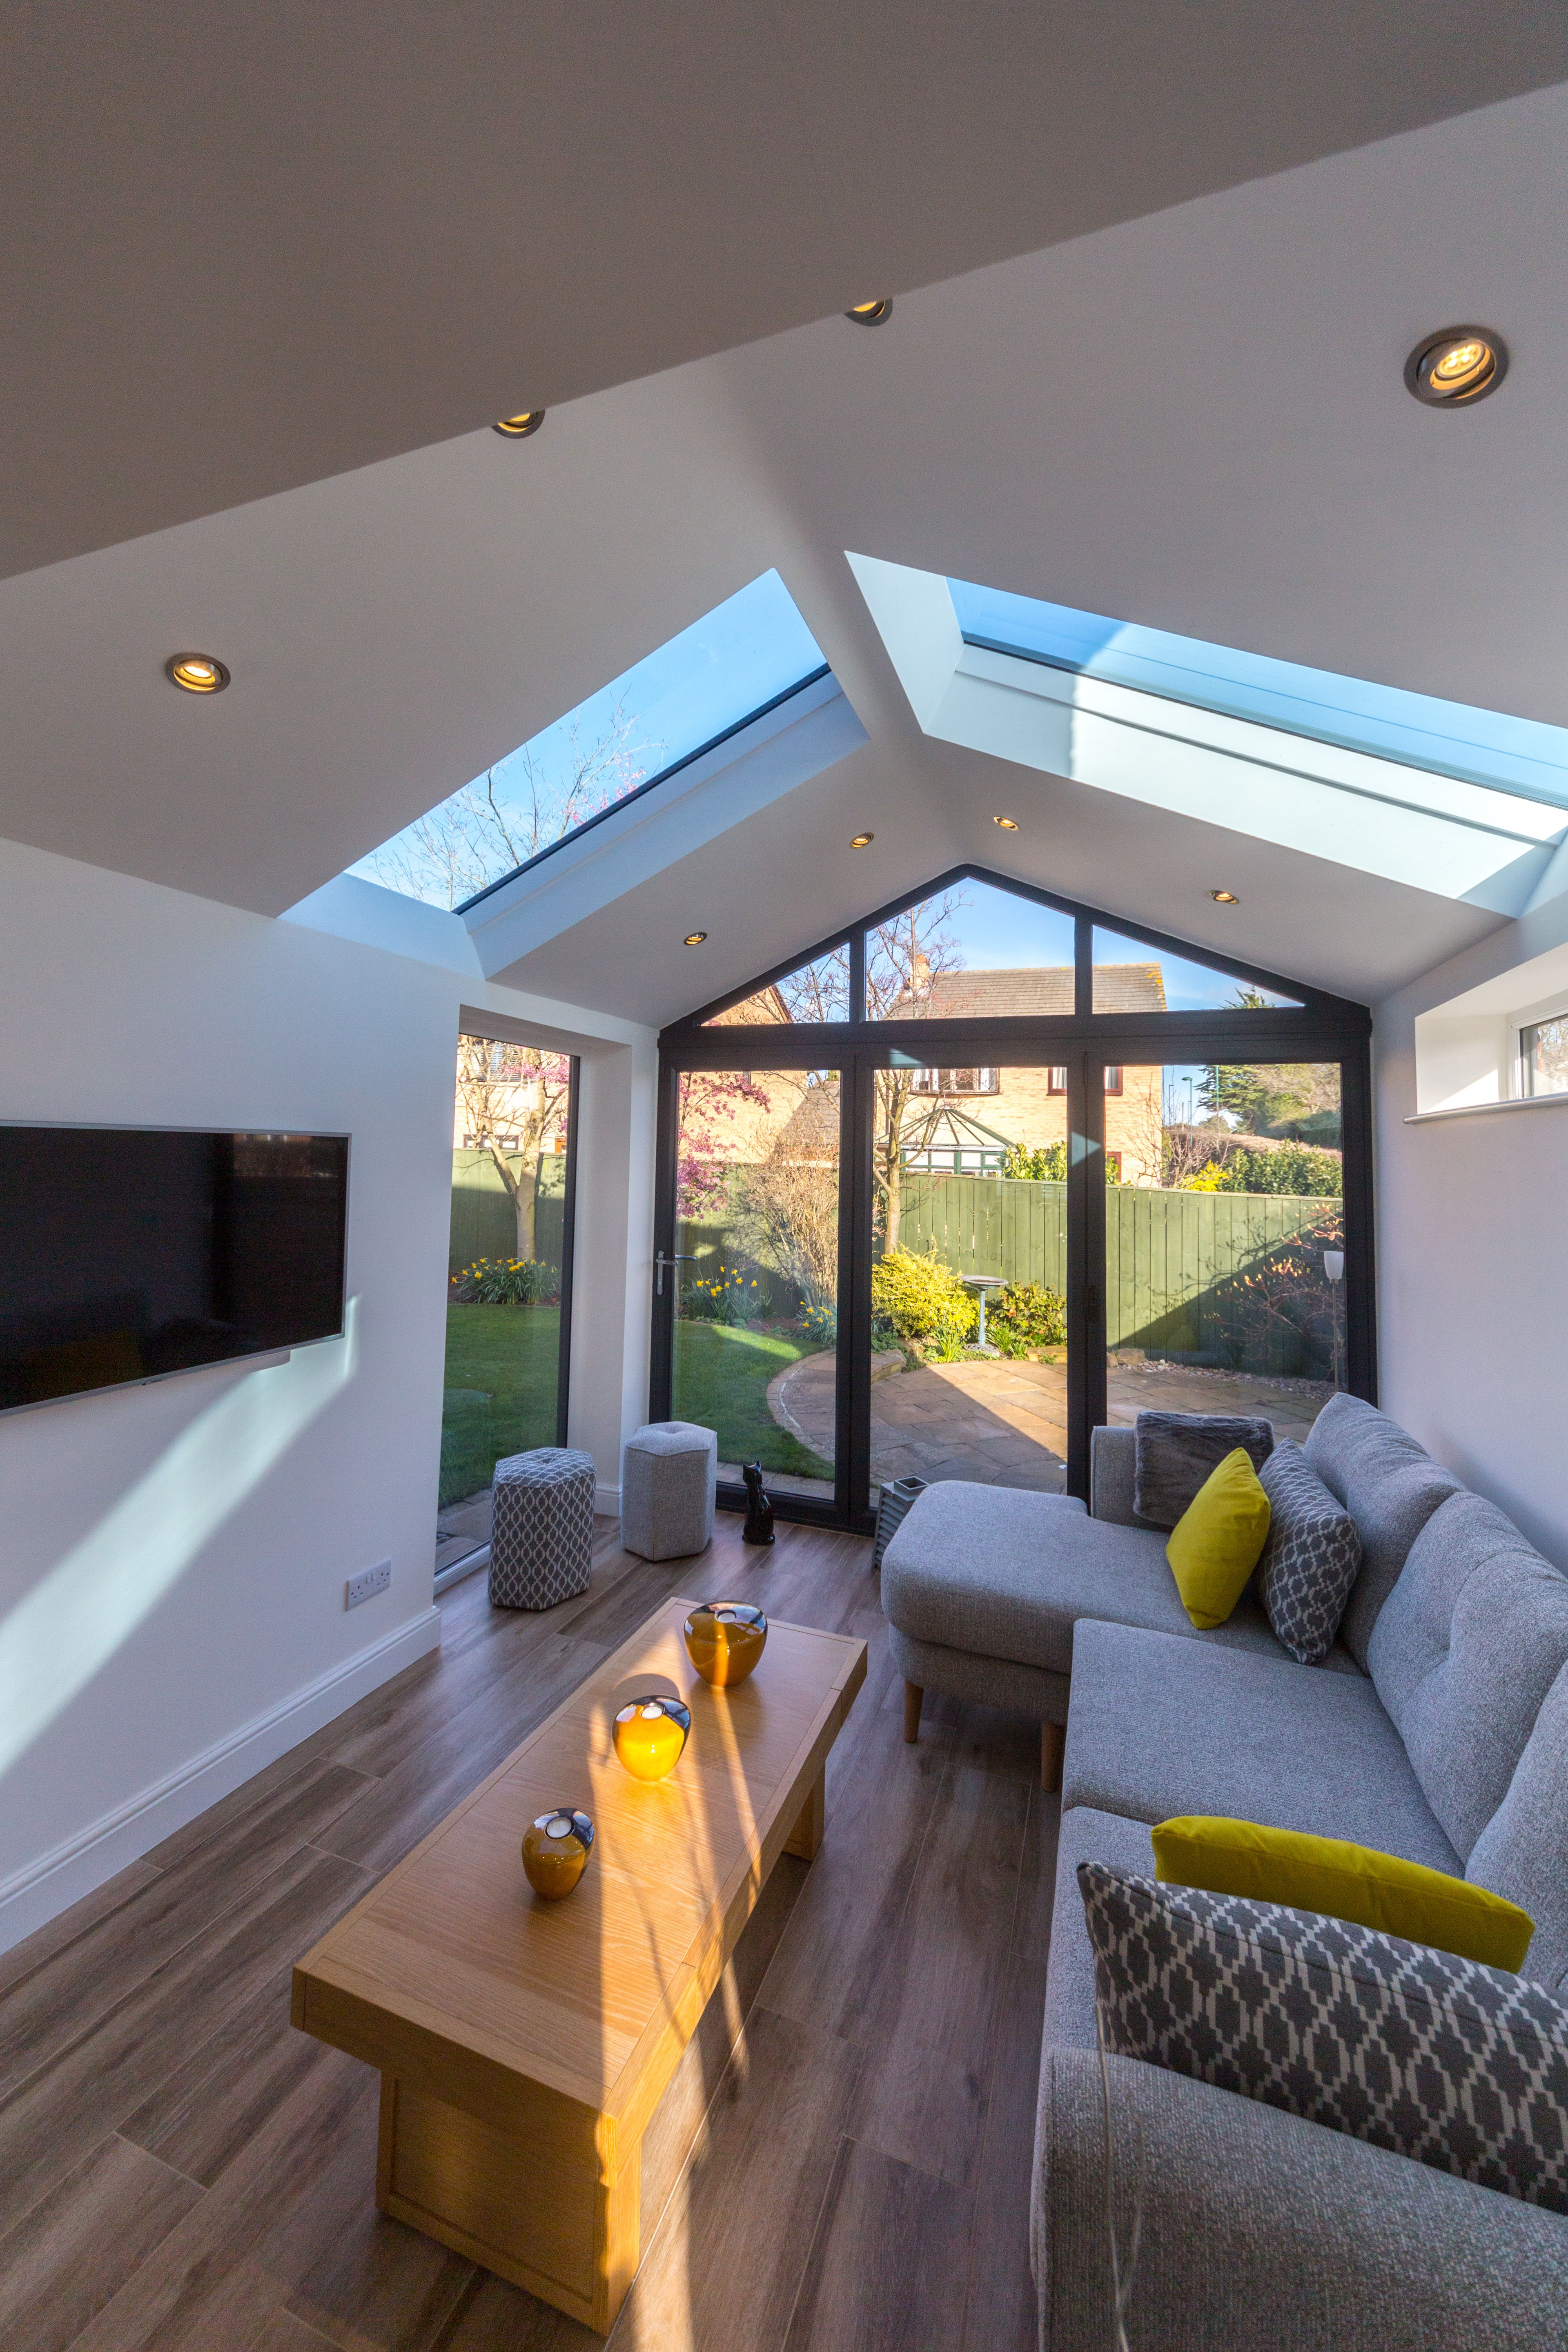 7 Stunning Home Extension Ideas: This Stunning Home Extension Features The Ultraroof Tiled Conservatory Roof. On The Inside The